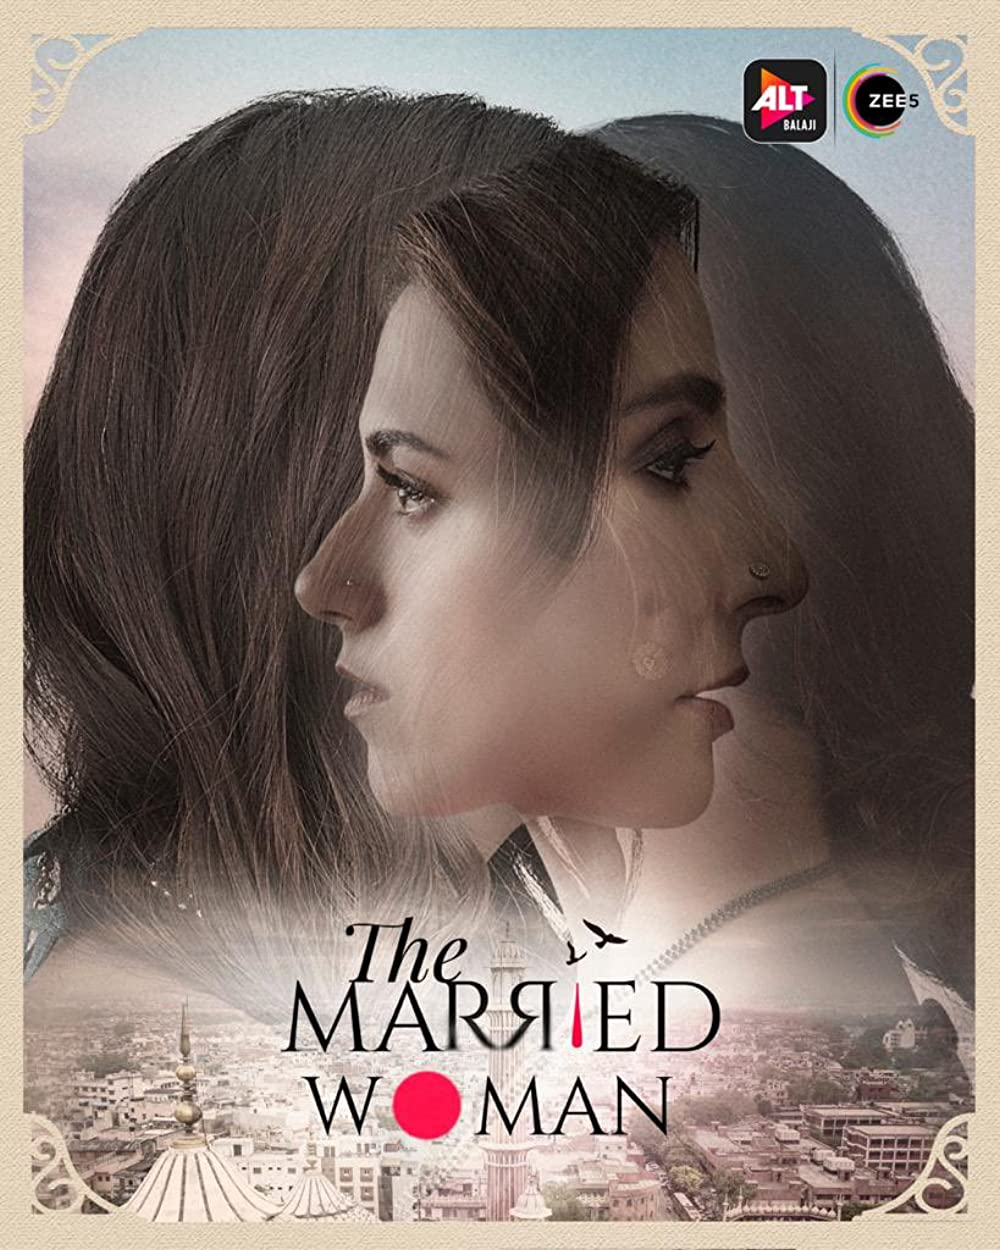 The Married Woman 2021 S01 Hindi Complete ALTBalaji Web Series 720p HDRip 2.1GB Download